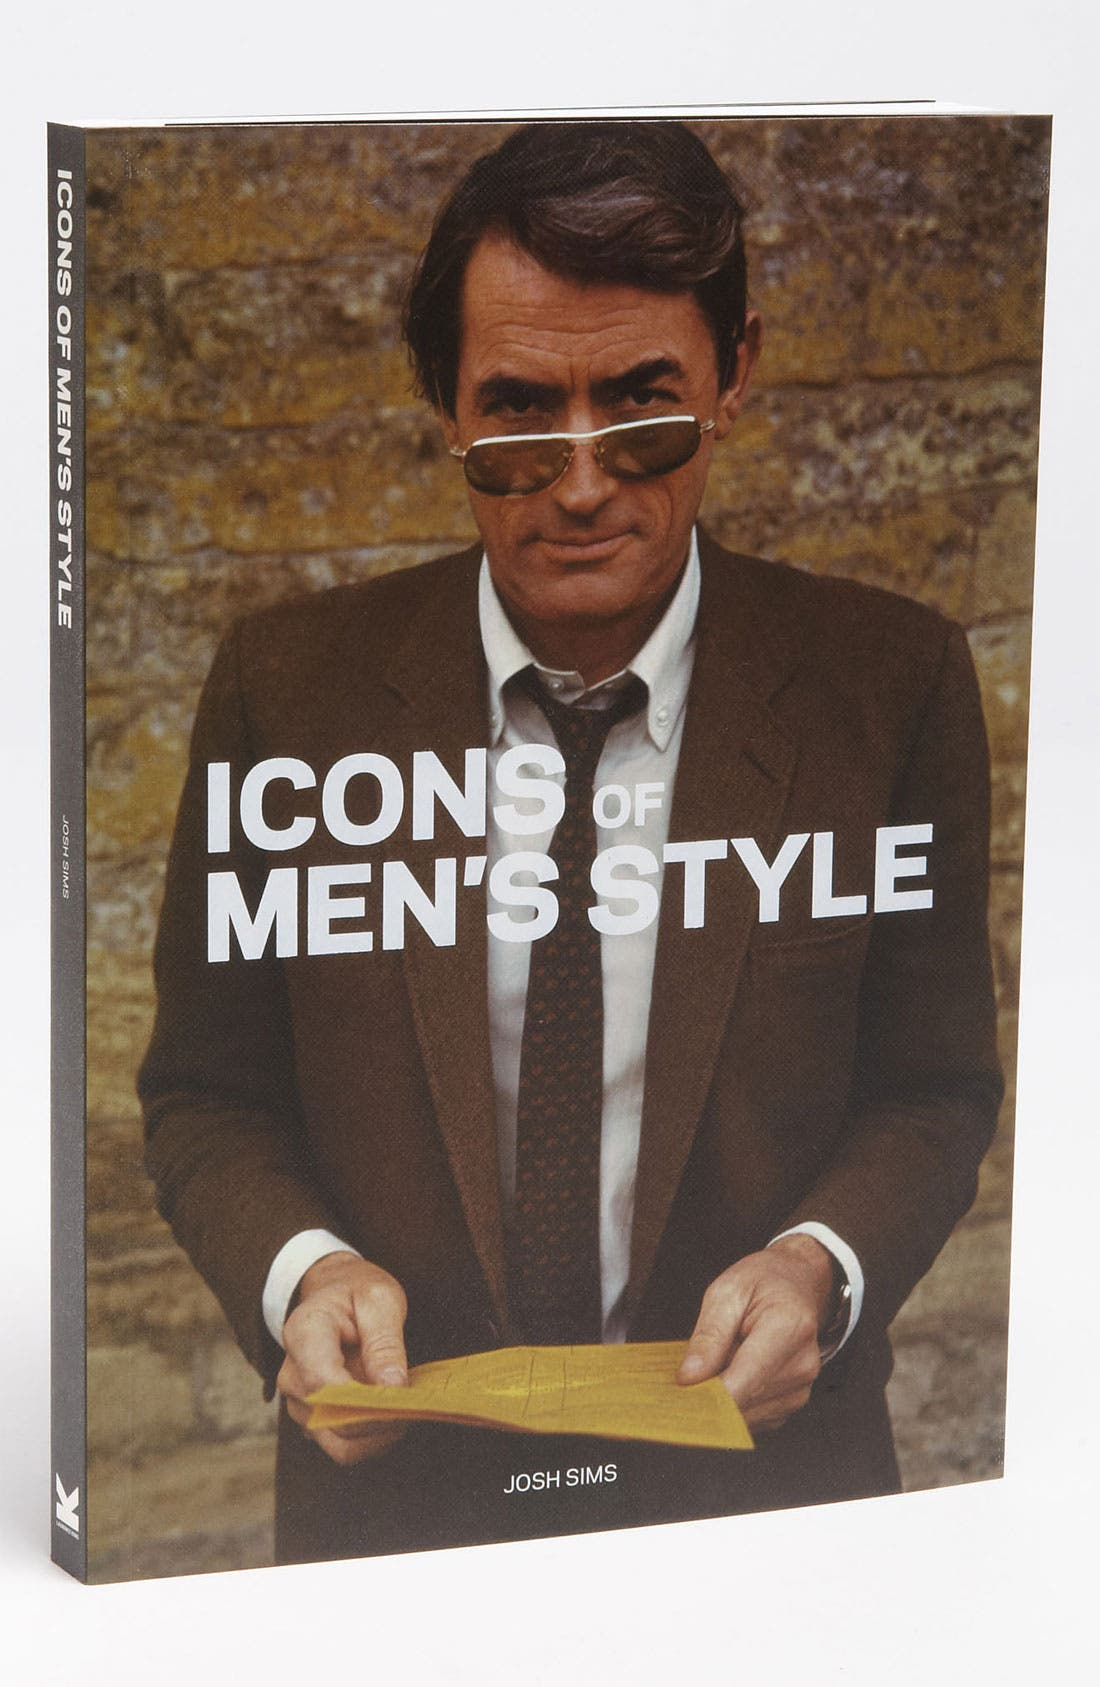 Alternate Image 1 Selected - 'Icons of Men's Style' Book